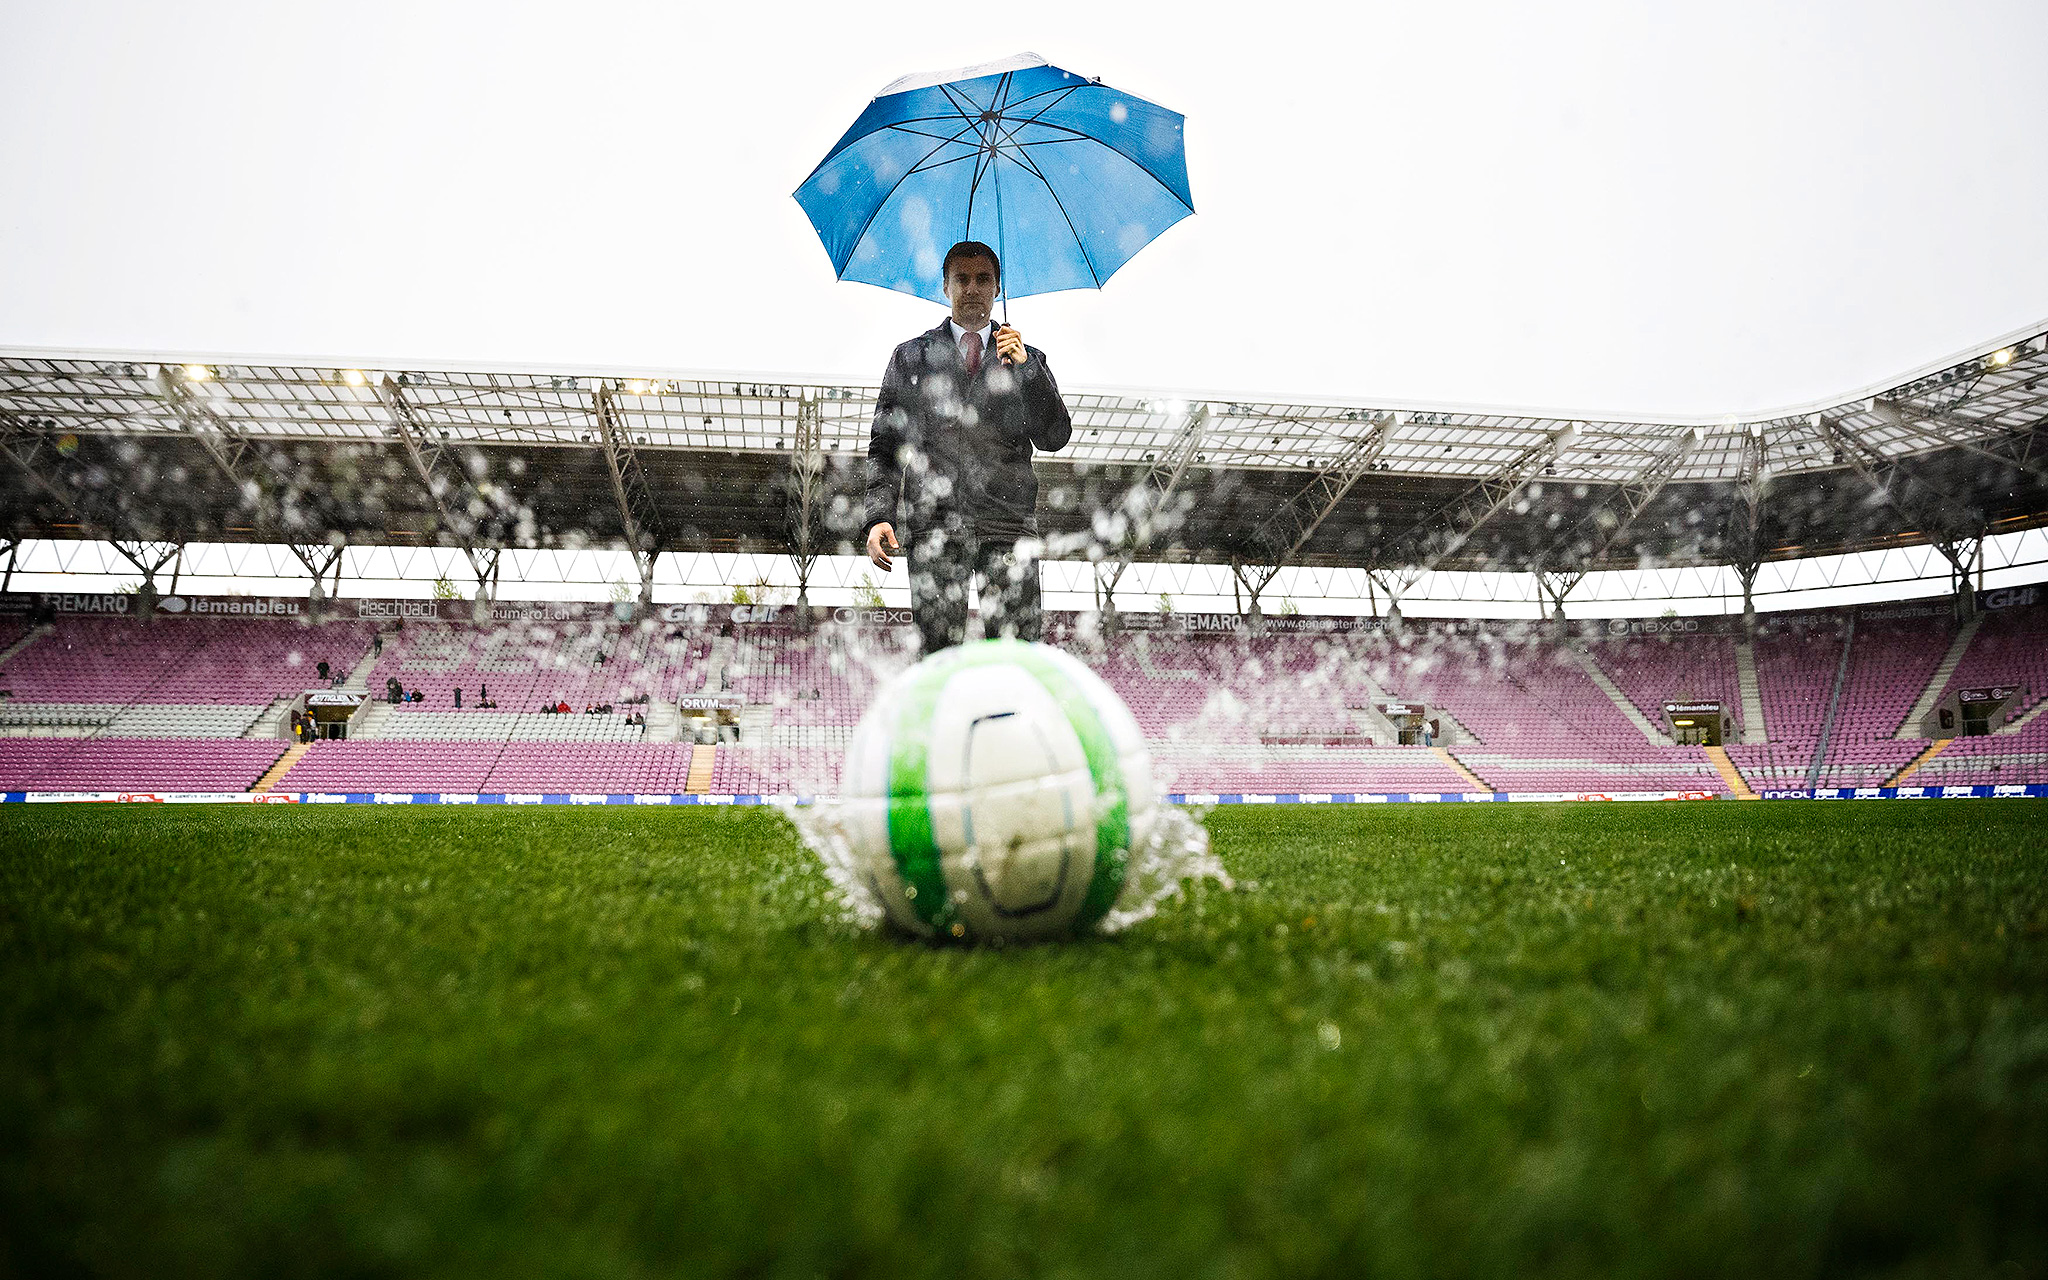 Precip On The Pitch